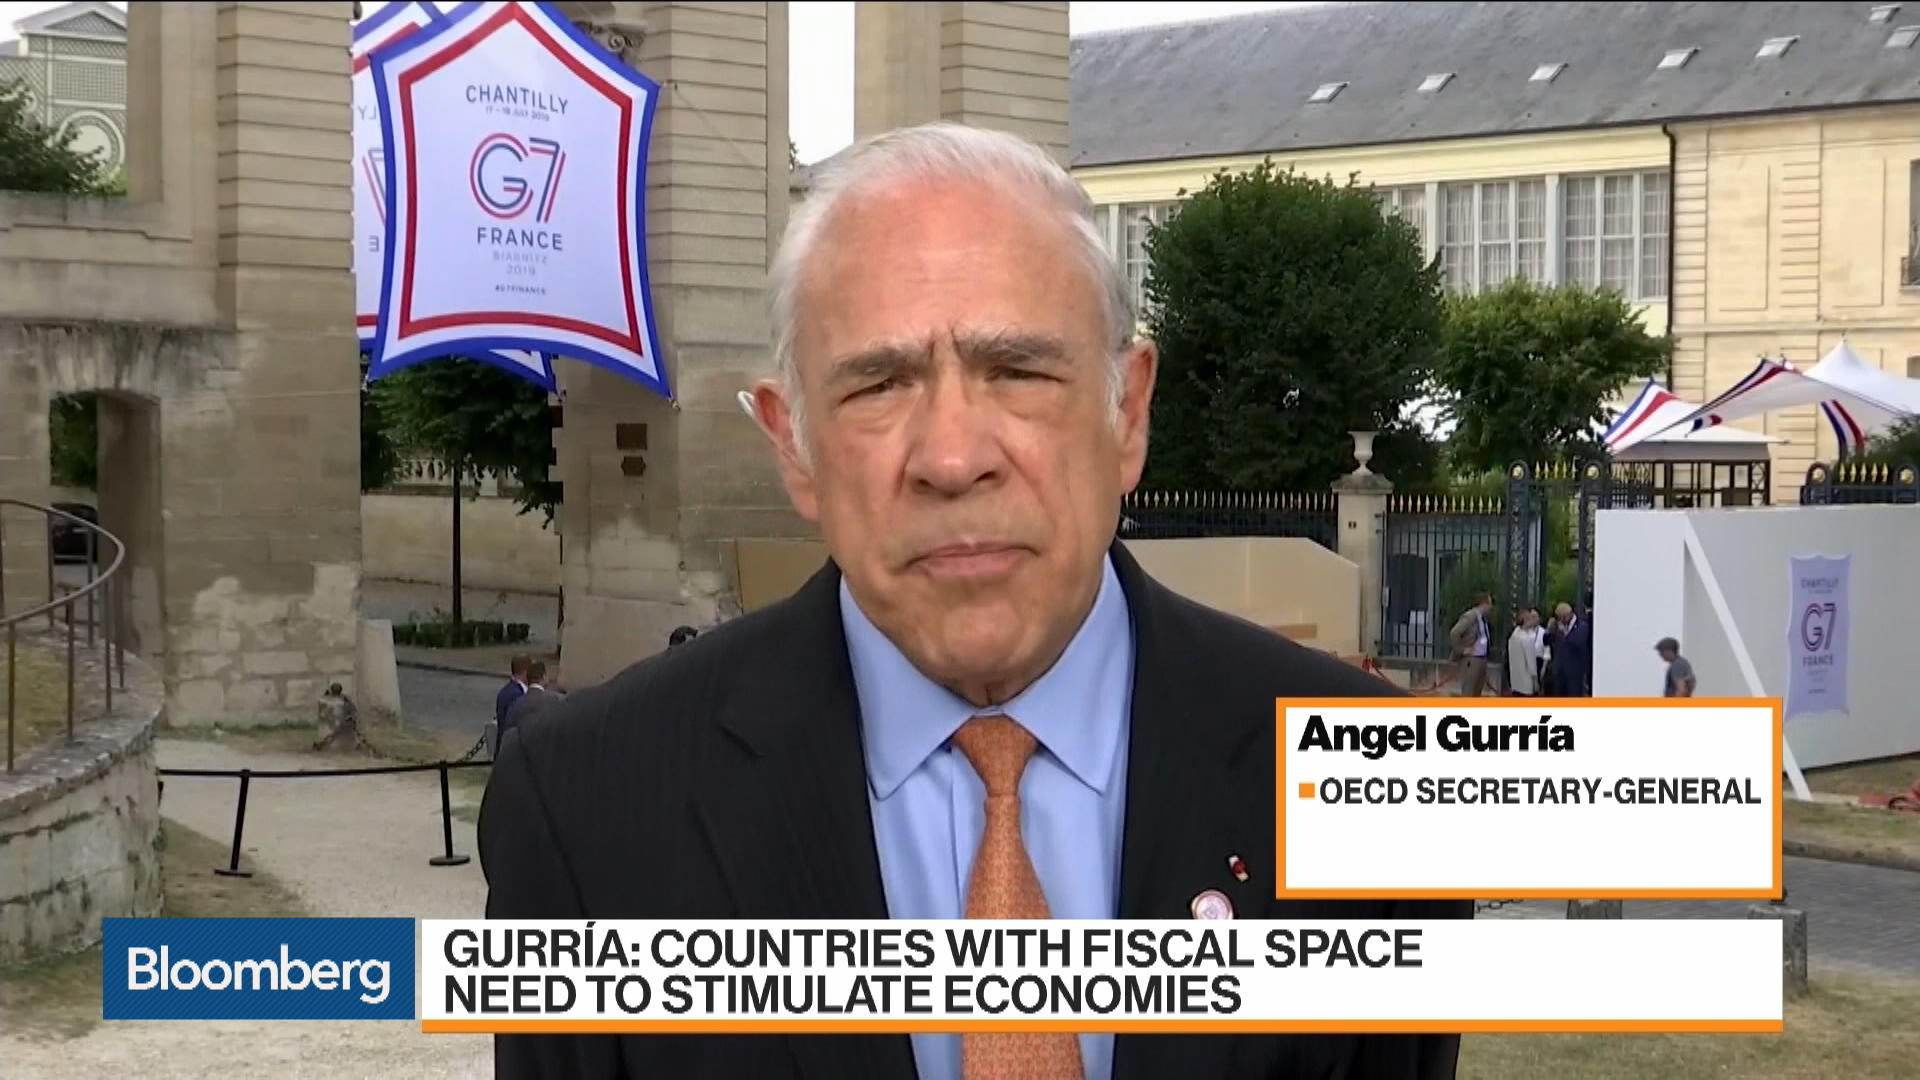 IMF Leadership 'In Good Hands' With Any of the Names on List, says Gurria